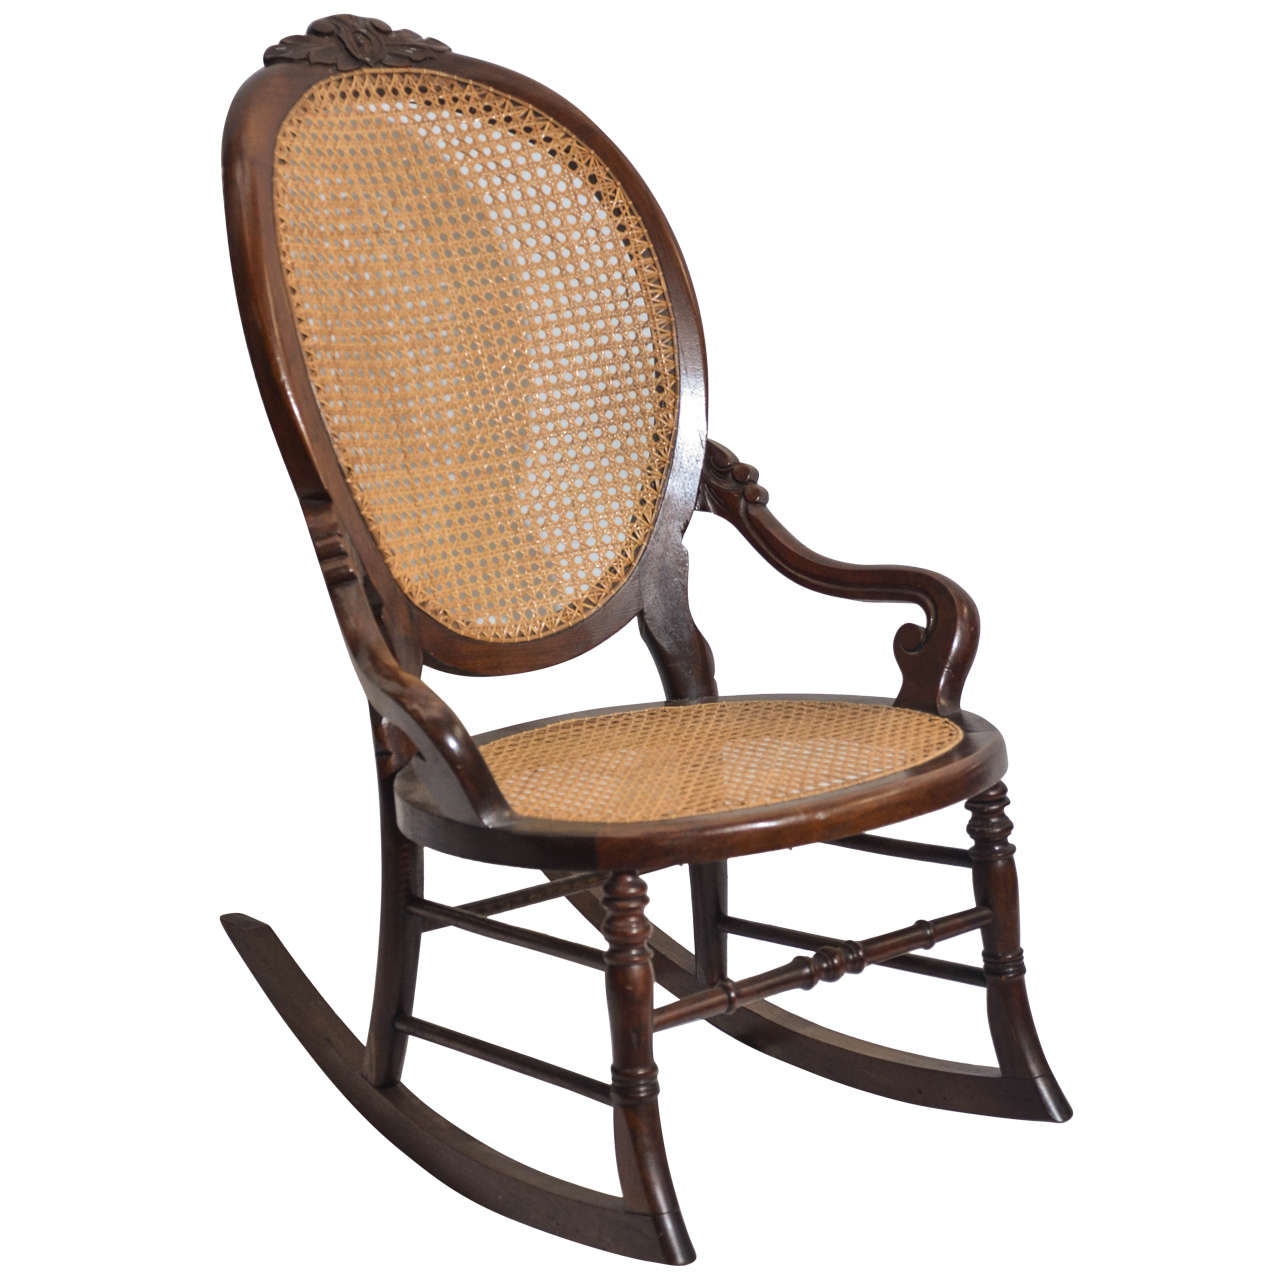 Victorian walnut lady s rocking chair for sale at 1stdibs for Rocking chair